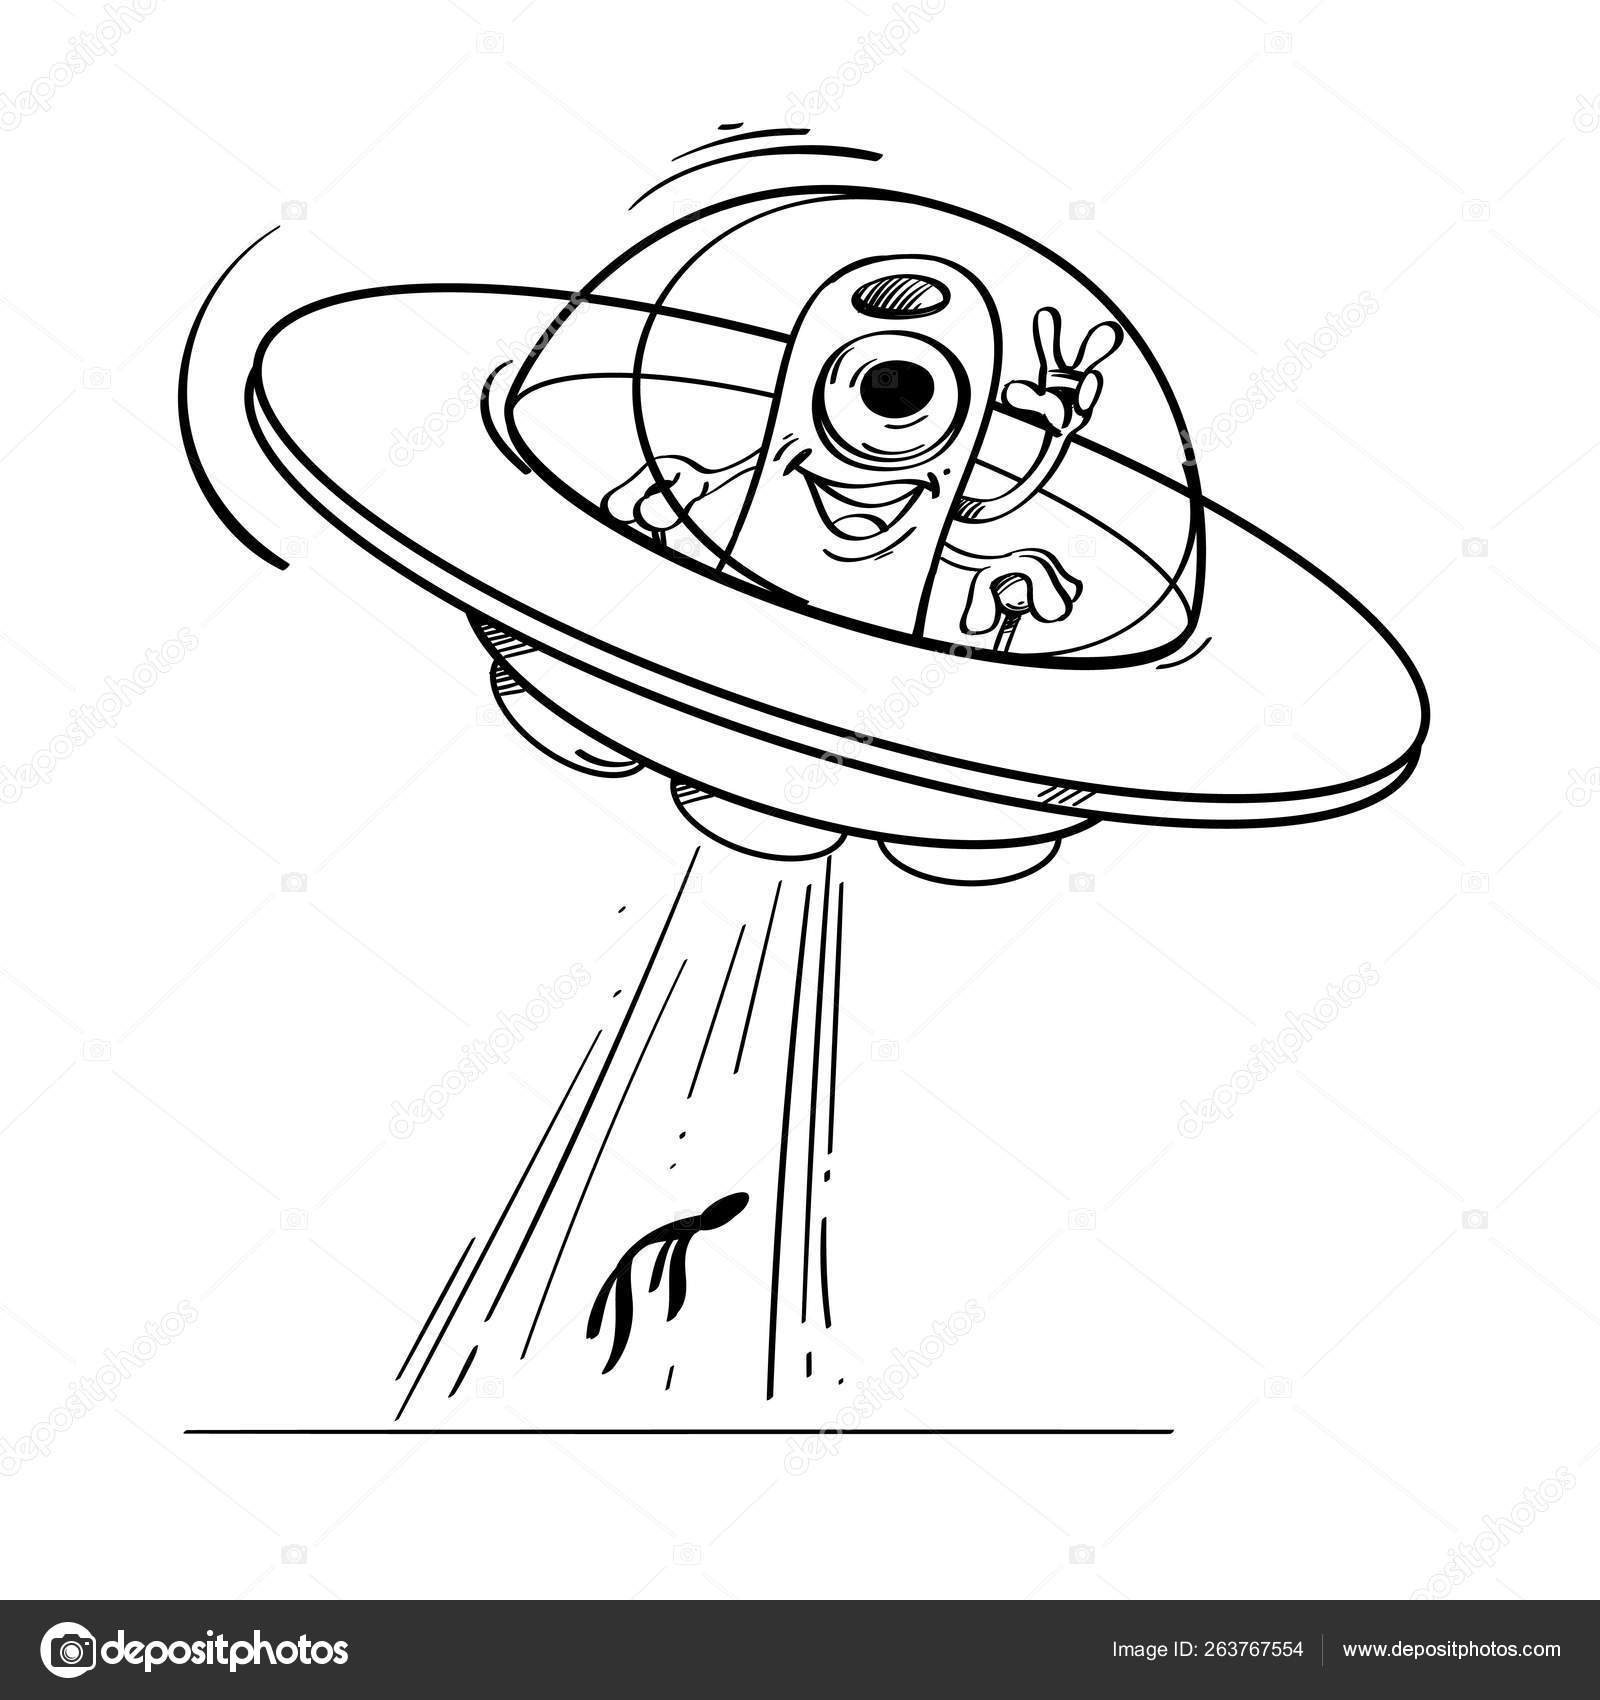 A Flying Saucer With An Alien Inside Kidnaps A Person Vector Black And White Drawing Vector Image By C Filkusto Vector Stock 263767554